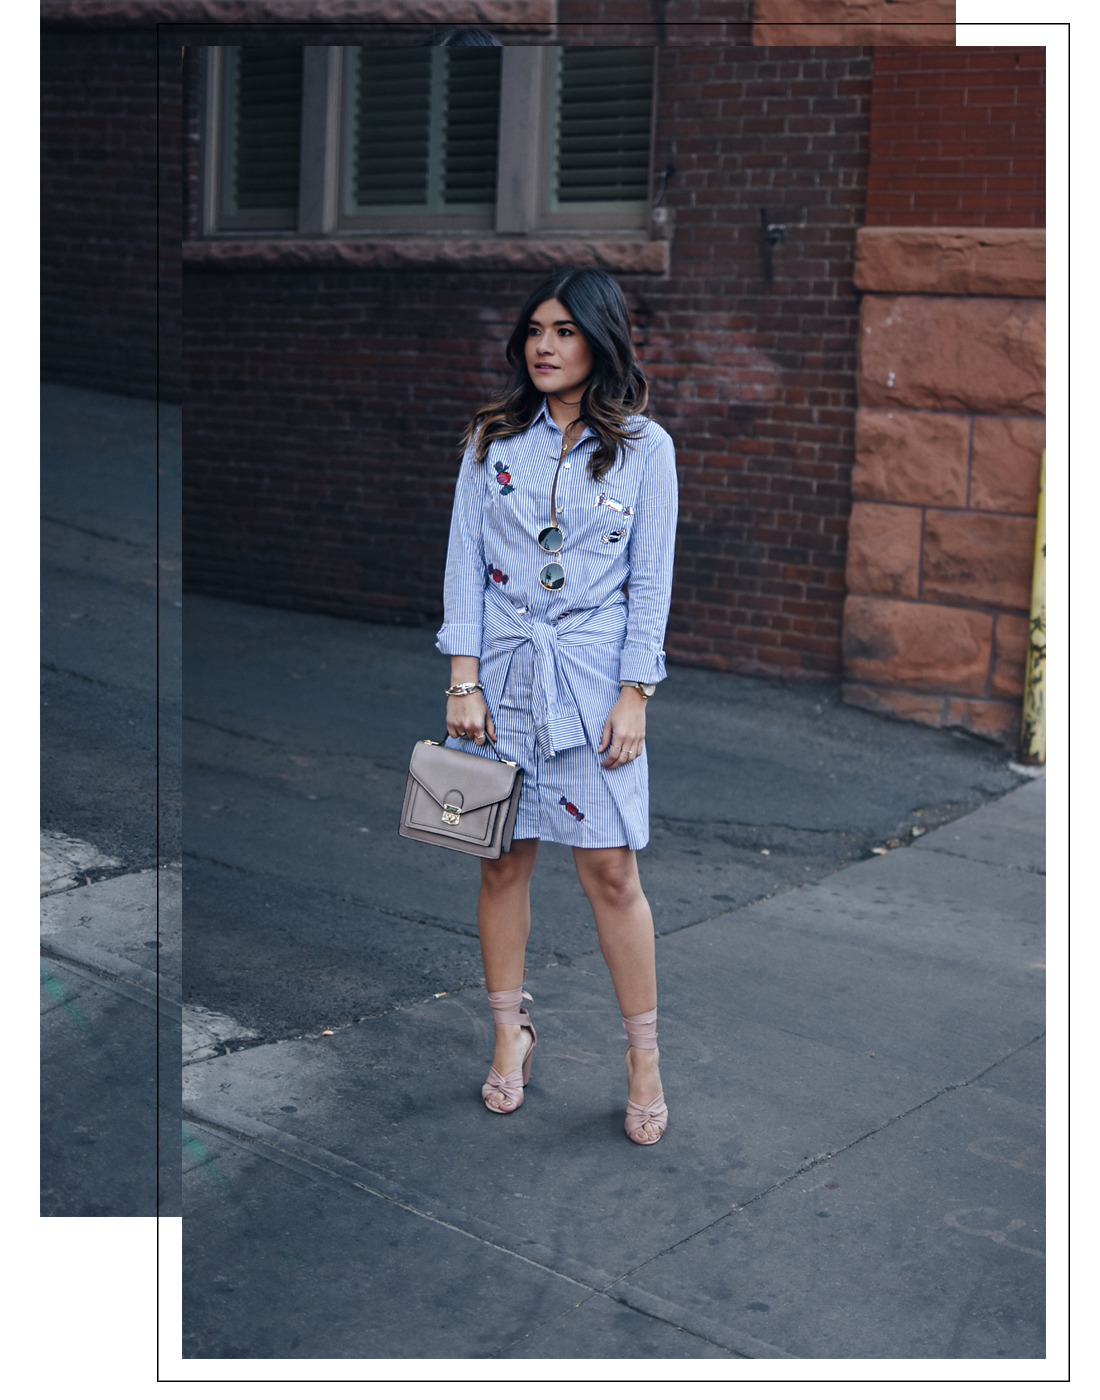 Carolina Hellal of Chic Talk wearing a stripped wrapped dress with patches, Rayban sunglasses, and Topshop rounded sunglasses